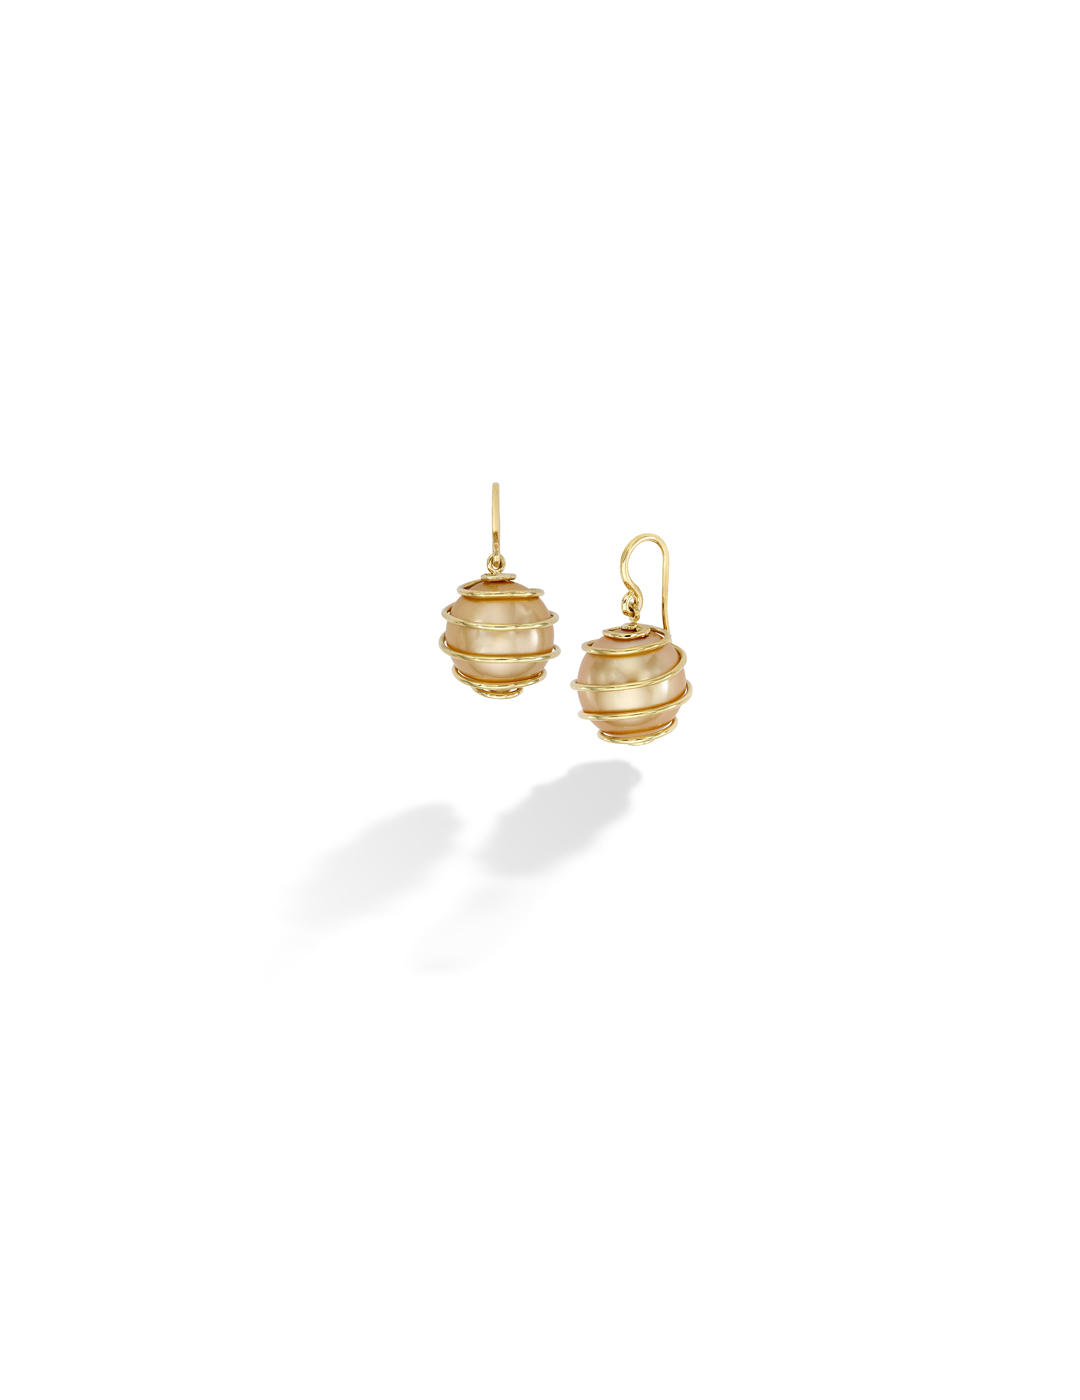 mish_products_earrings_Orbiting-Prl-Golden SS-ER-1